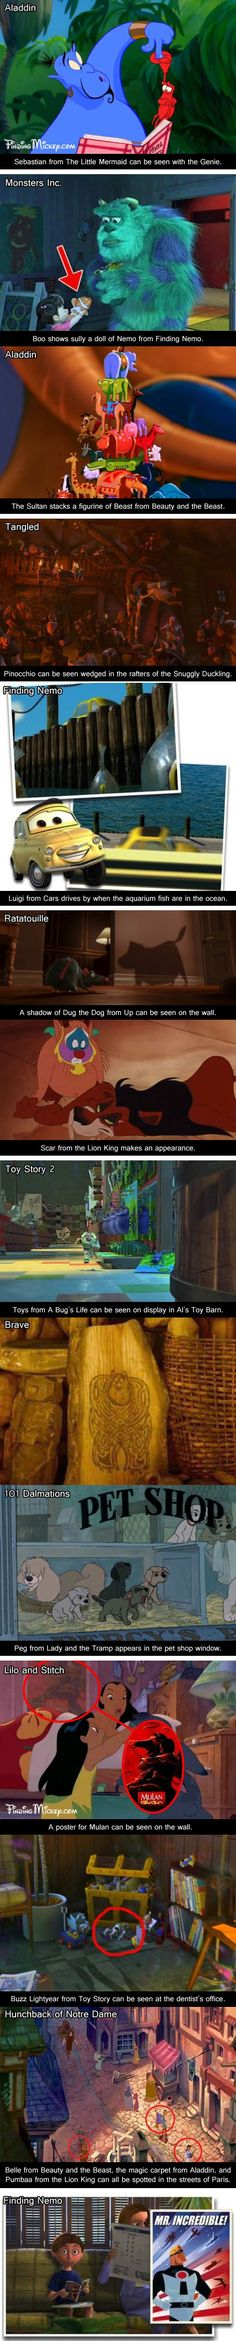 You obsess over finding every little hidden secret: | 25 Signs You Grew Up With Disney This makes me question my entire childhood...the funny thing is that there're stuff from movies that happened after...does that mean they already existed?